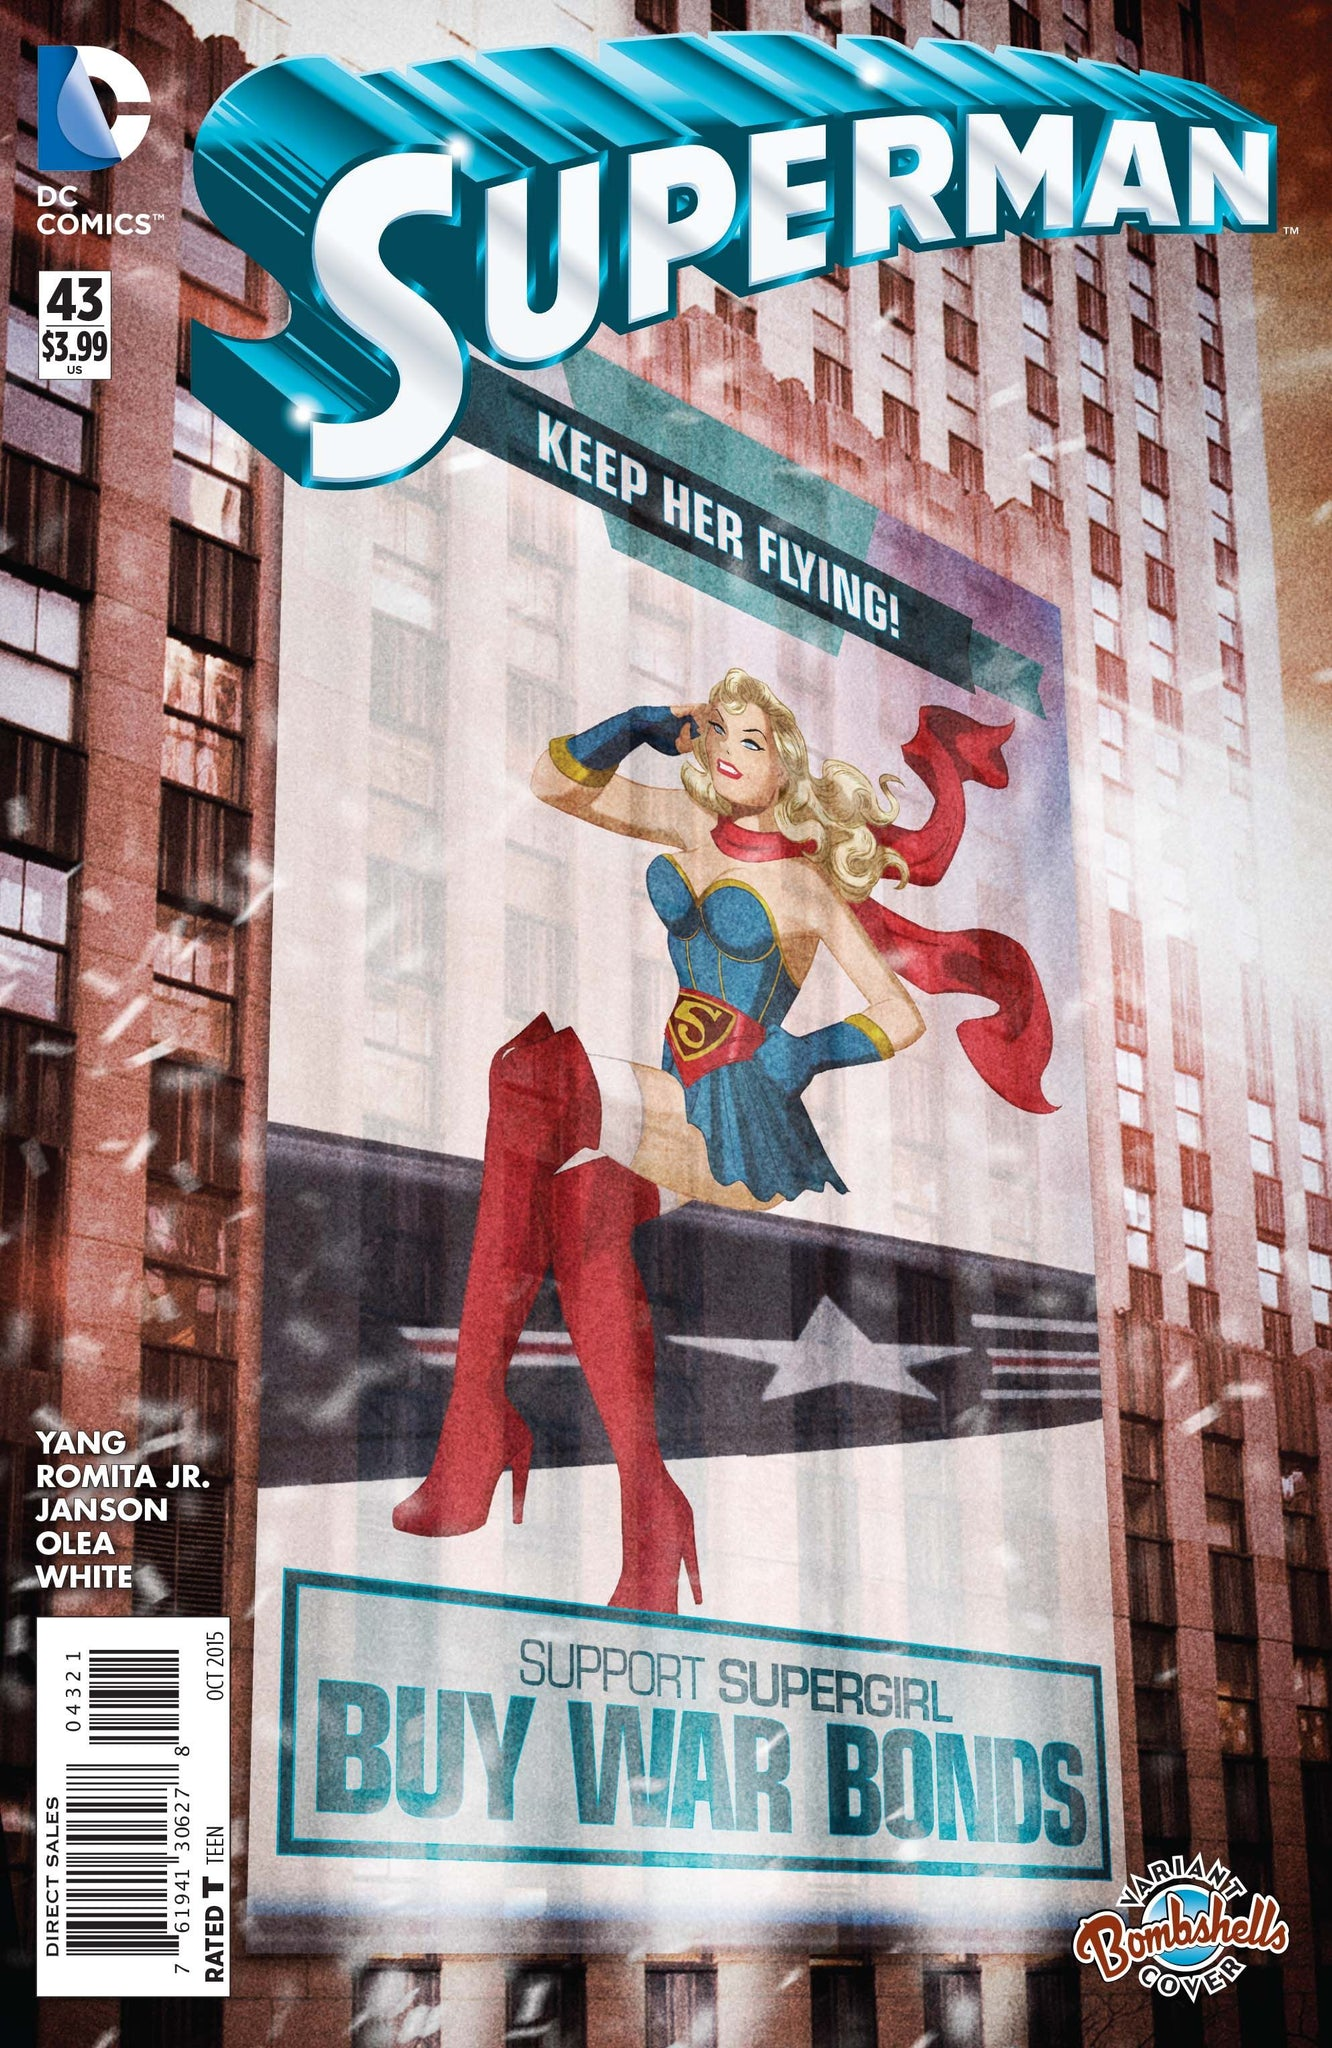 Superman (The New 52) #43 DC Bombshells Variant